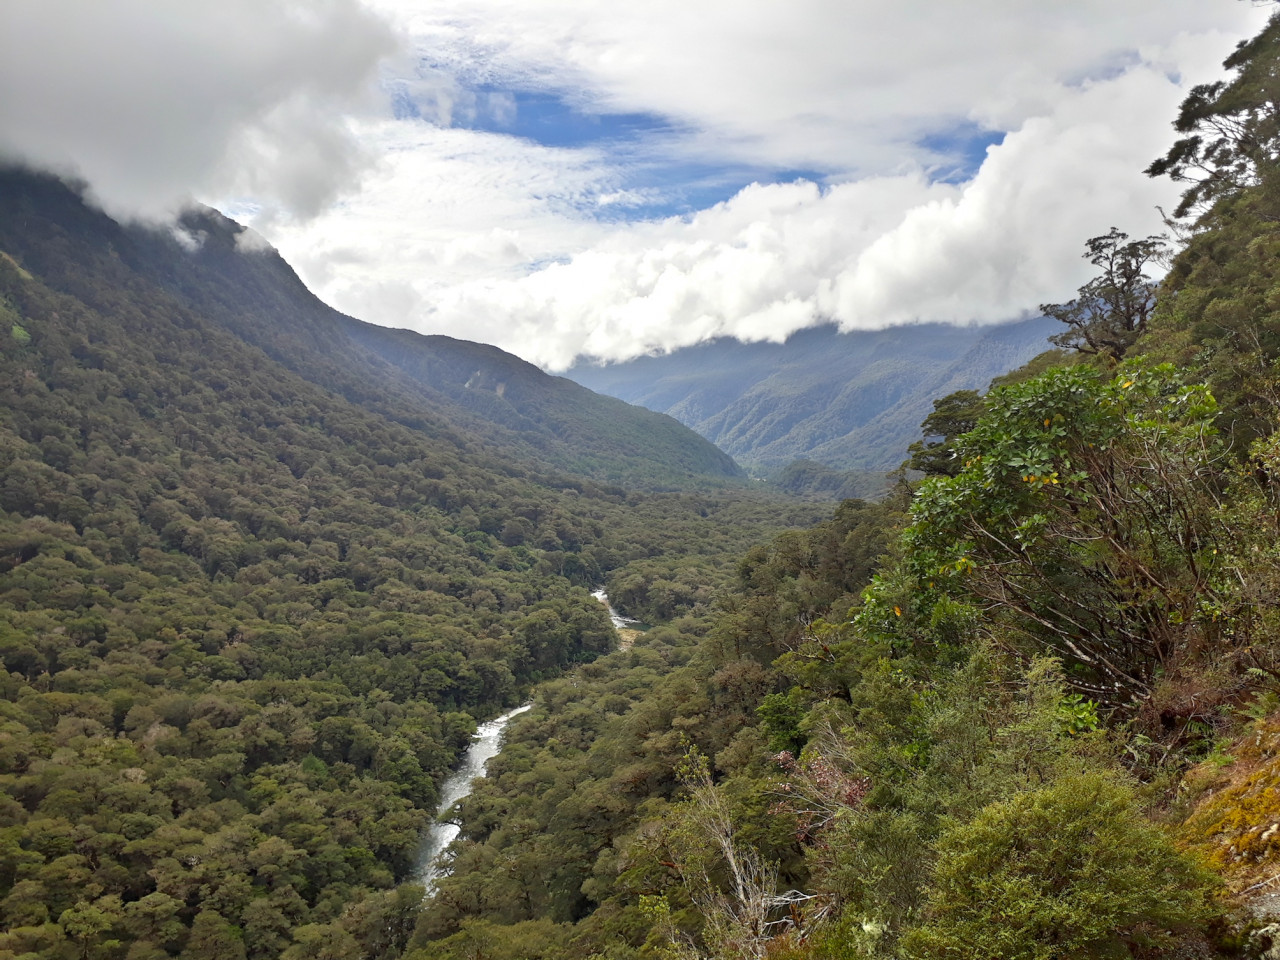 The stunning roadside lookout called Pop's view provides a view up the lush Hollyford Valley.